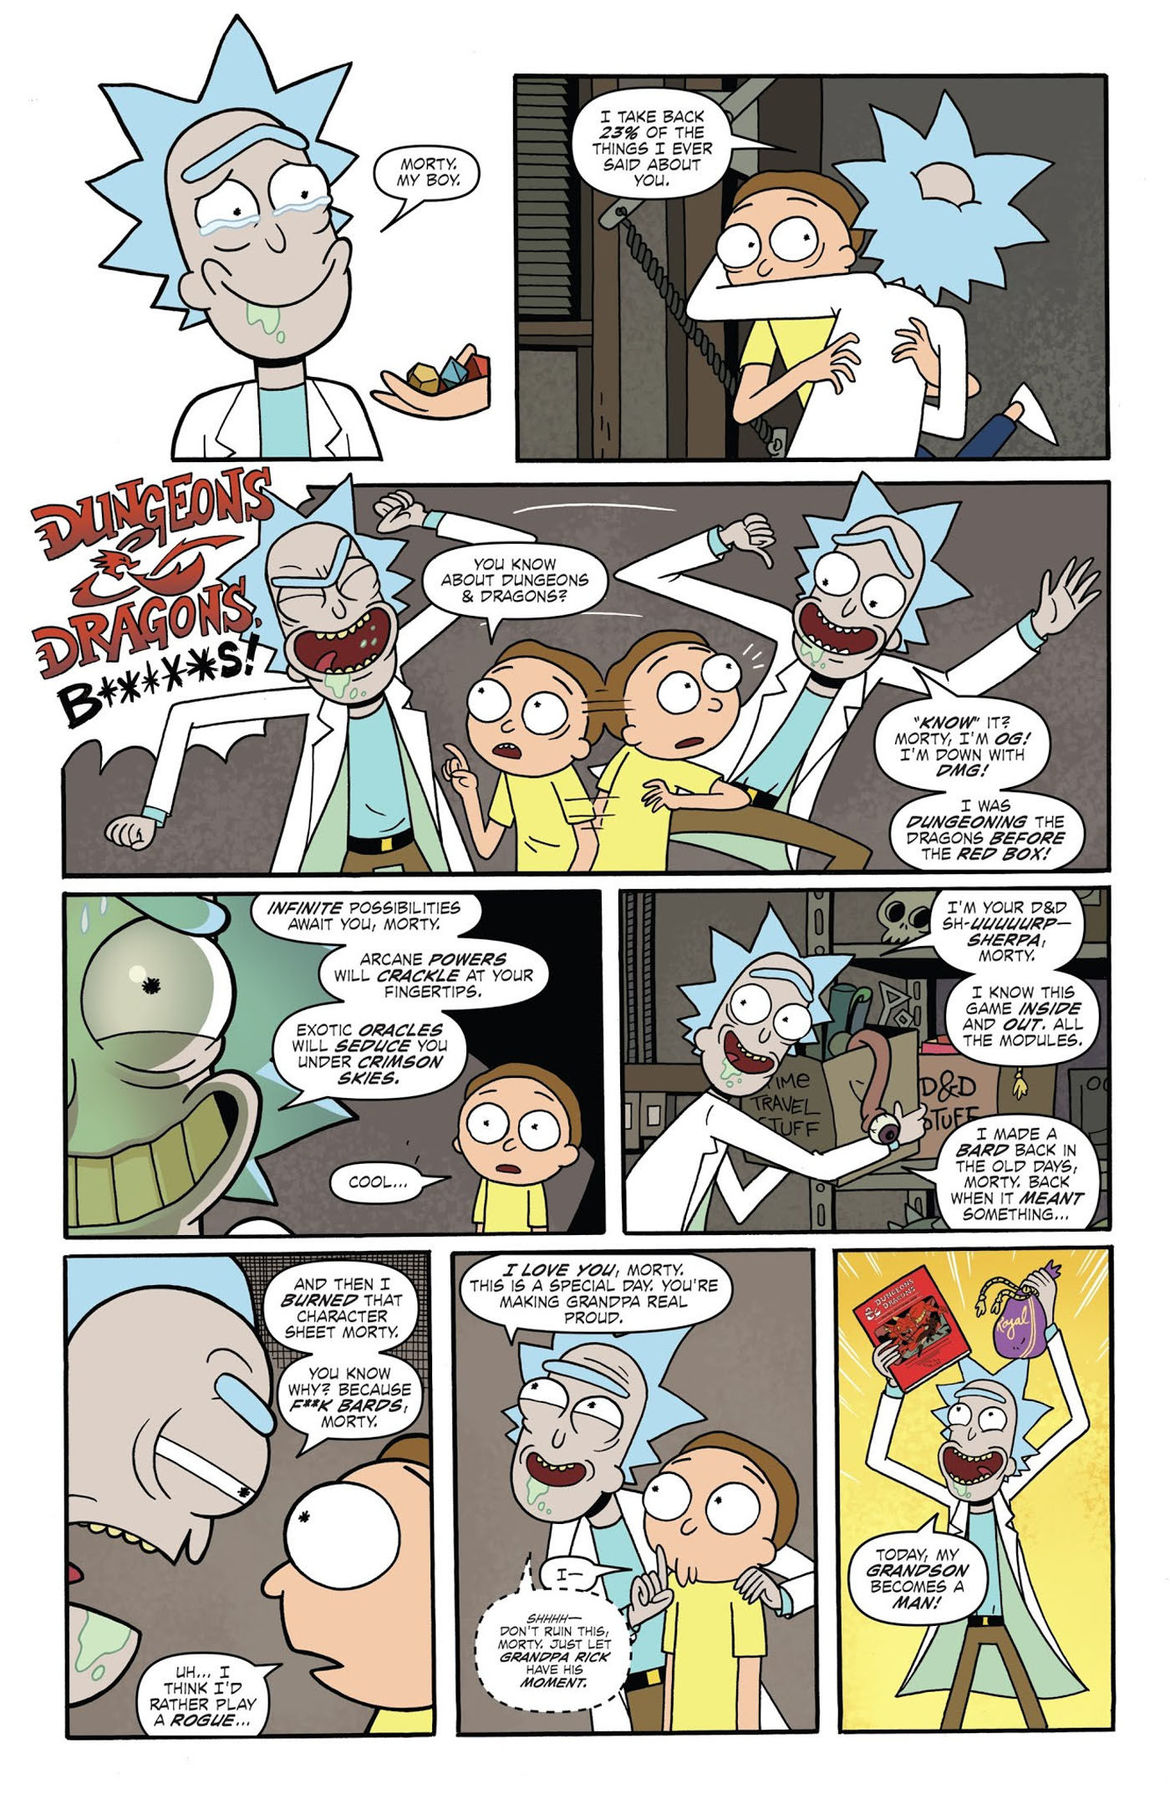 Rick and Morty vs Dungeons and Dragons 1 Page 10